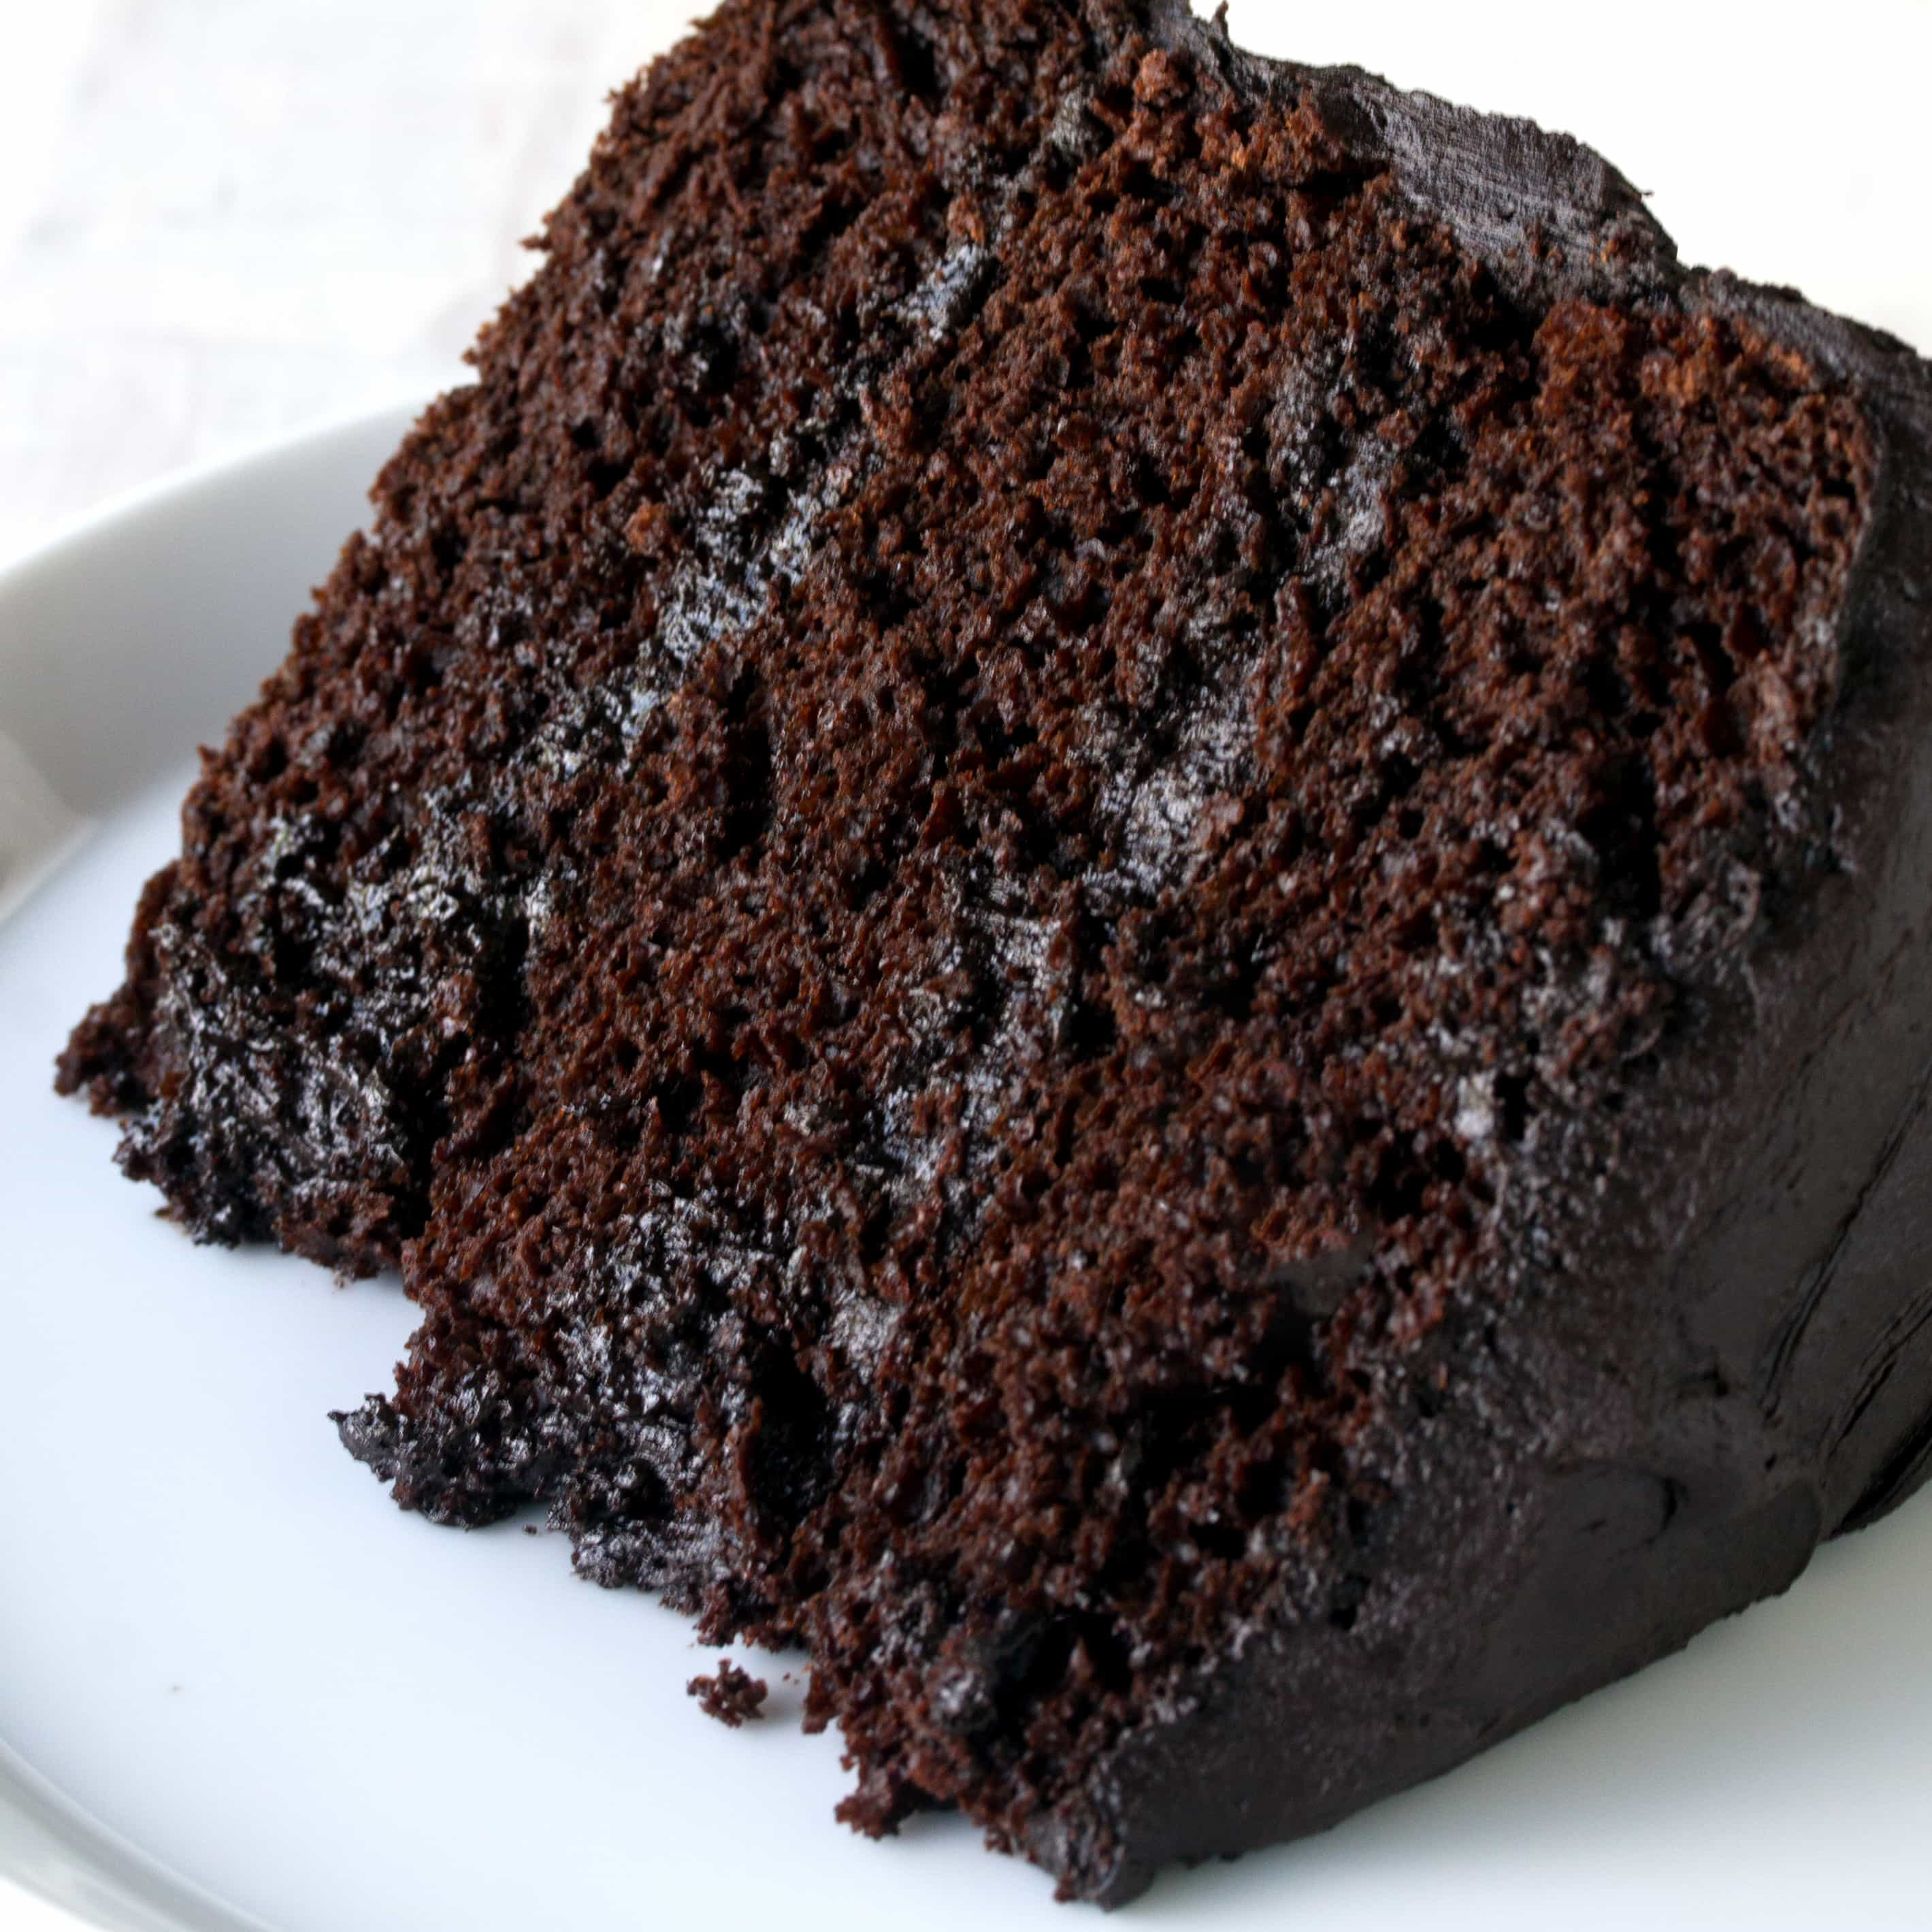 Chocolate Cake Recipe From Scratch No Milk